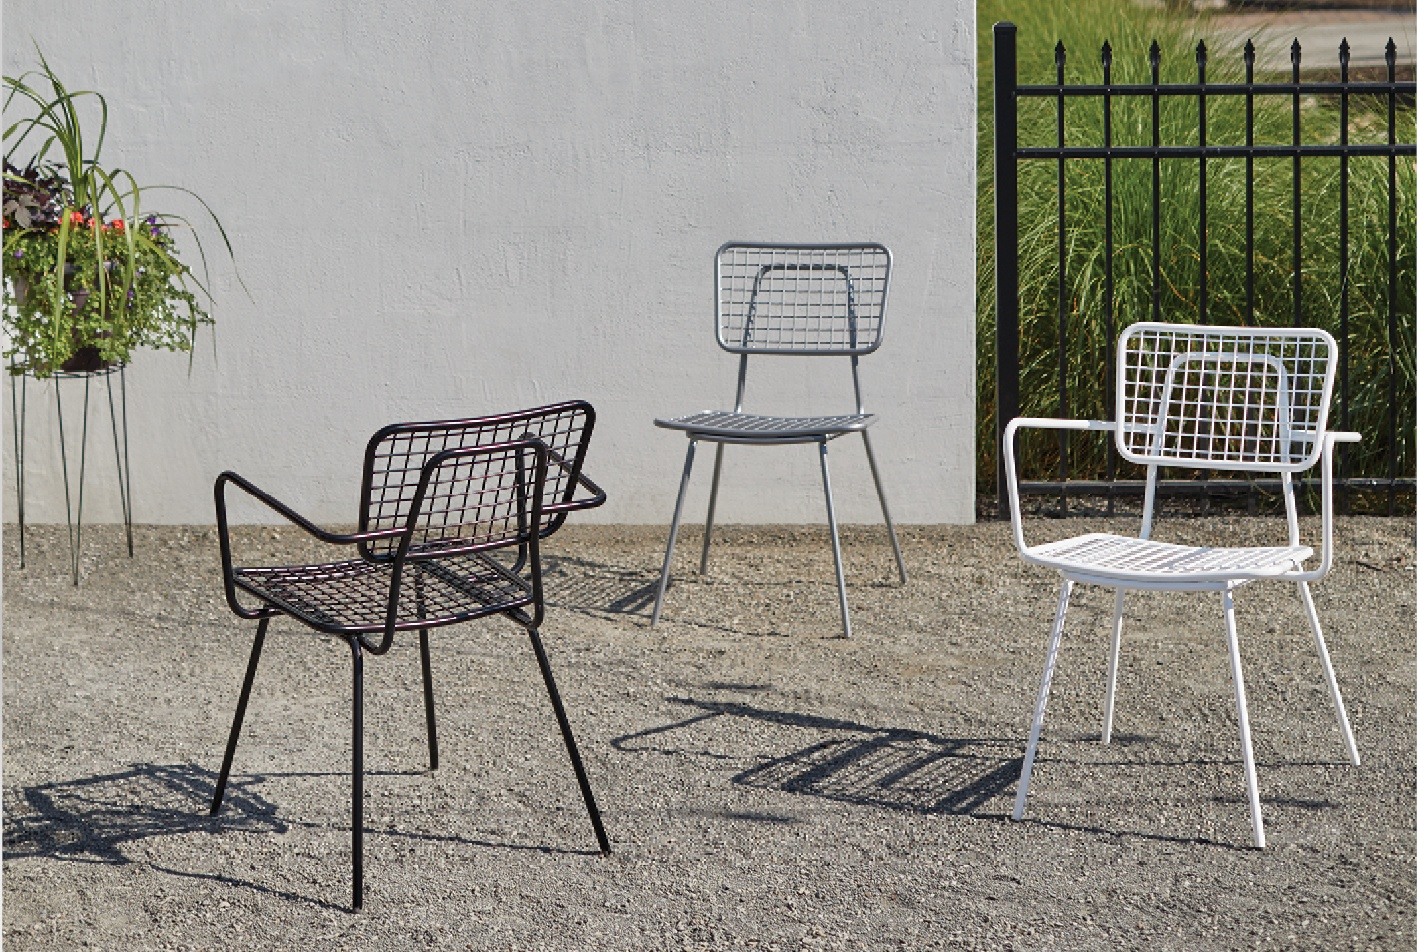 Outdoor Restaurant Chairs Opla Collection.jpg